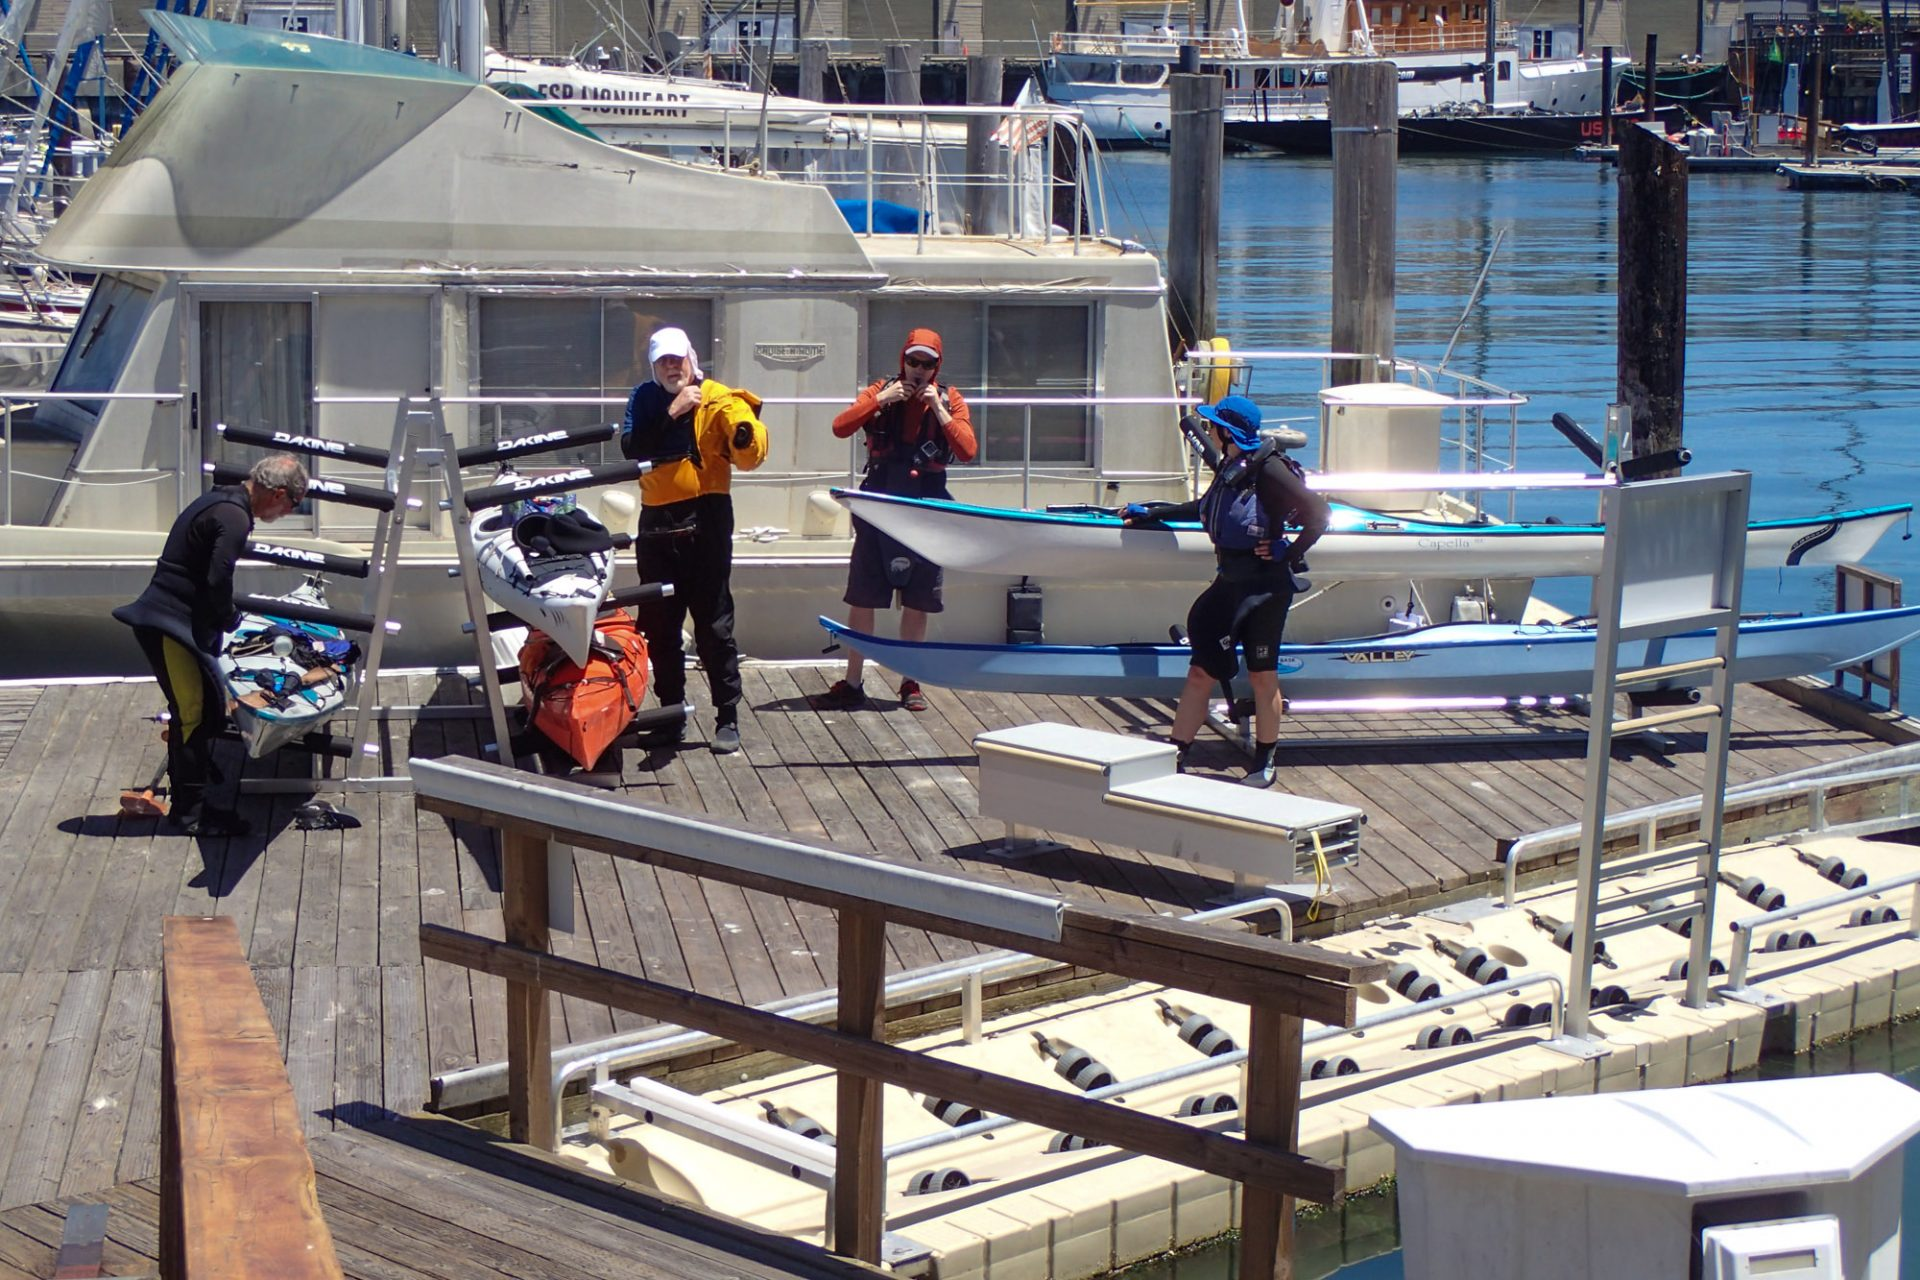 Four people stand among kayaks and racks on wooden pier, putting on jackets